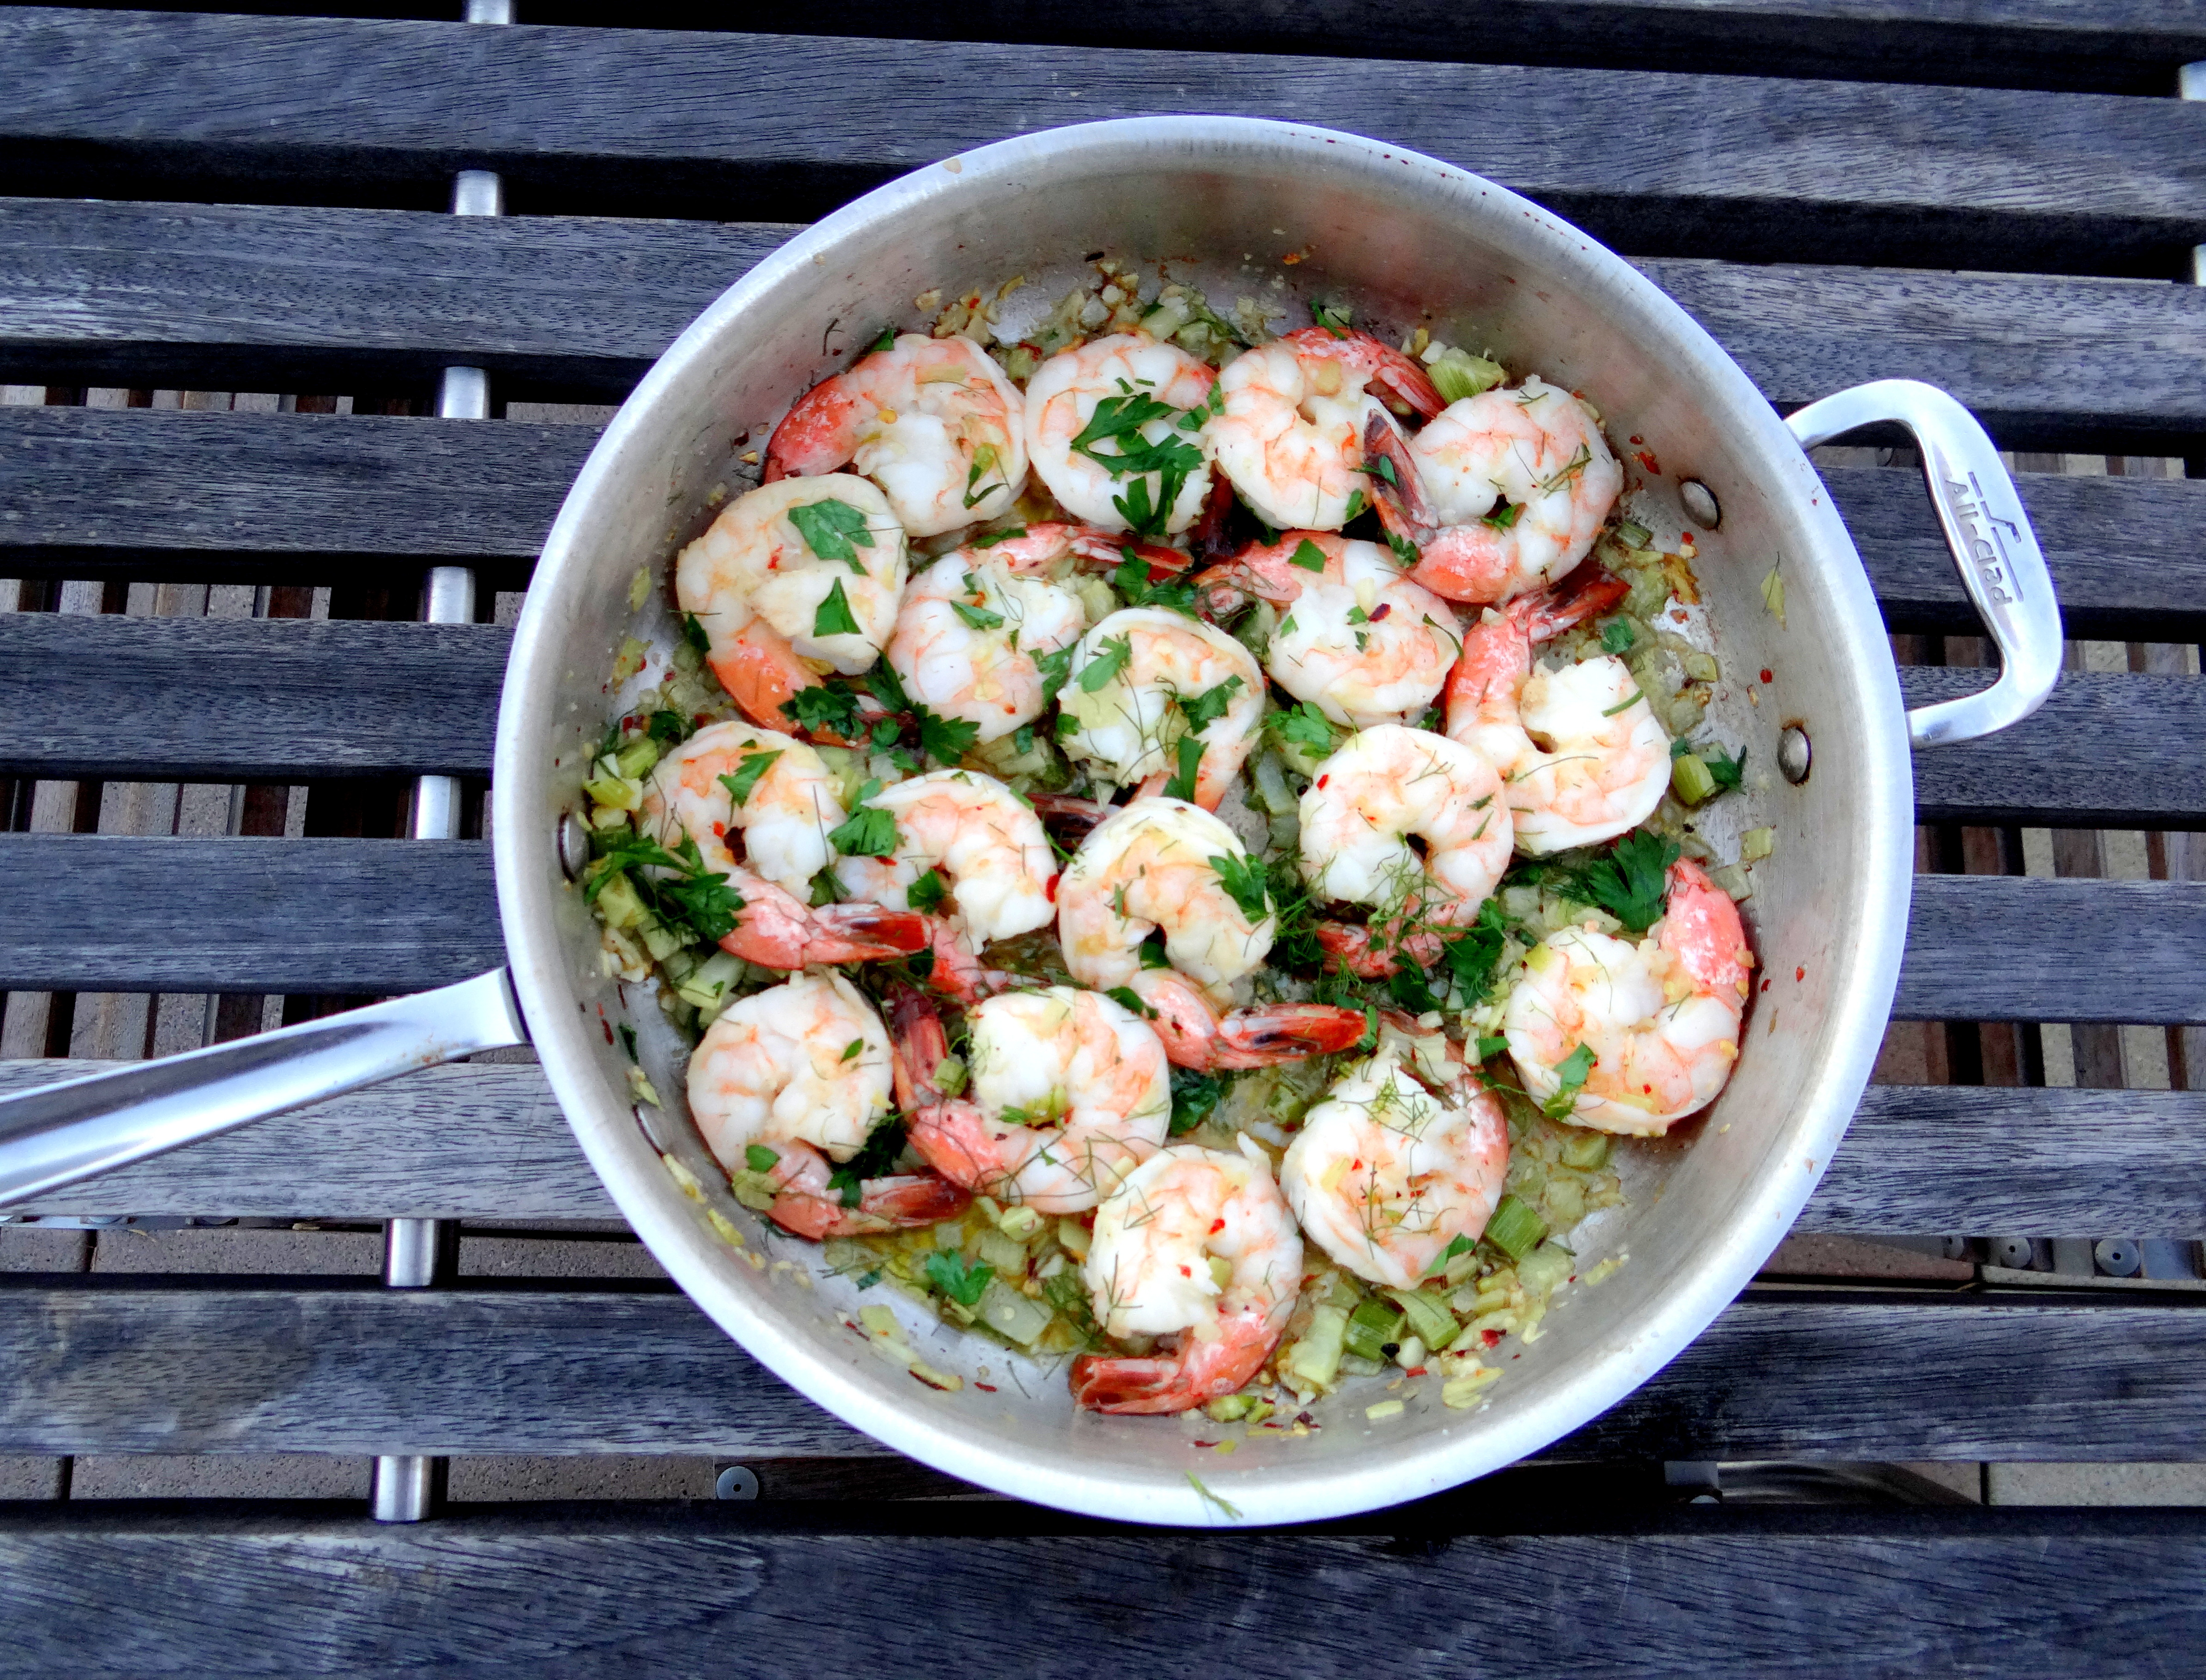 Barefoot Contessa Garlic Shrimp